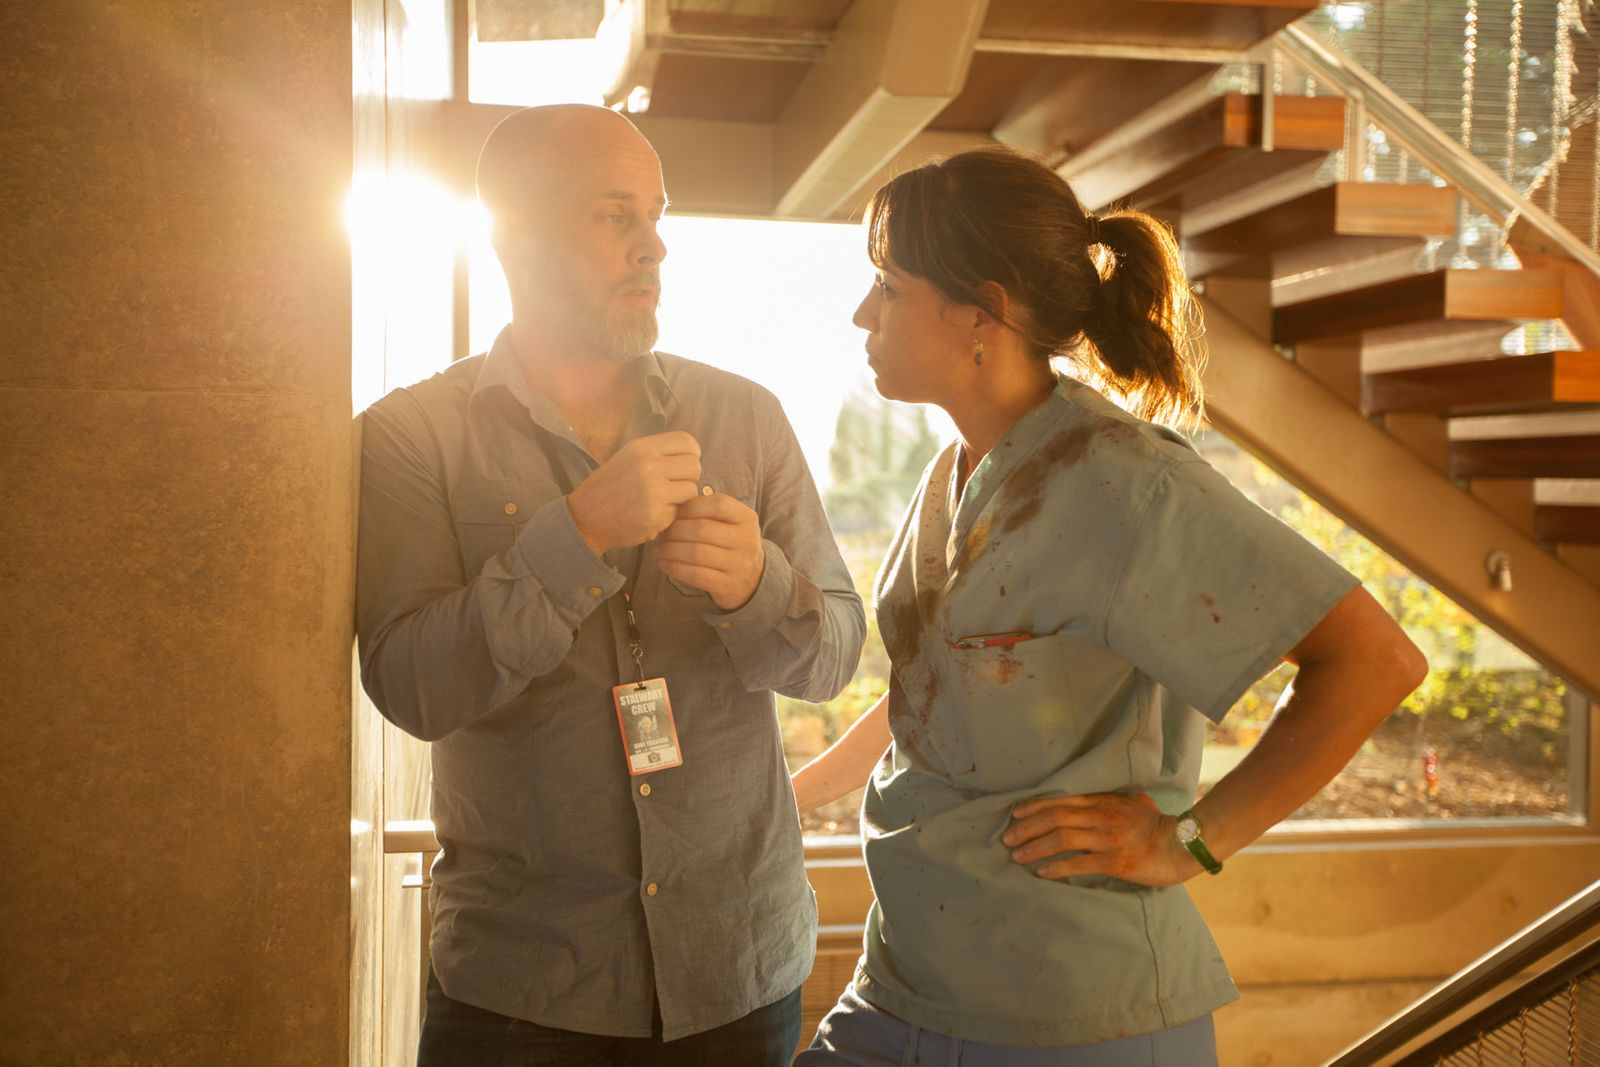 Dave Erickson + Elizabeth Rodriguez on the set of Fear The Walking Dead